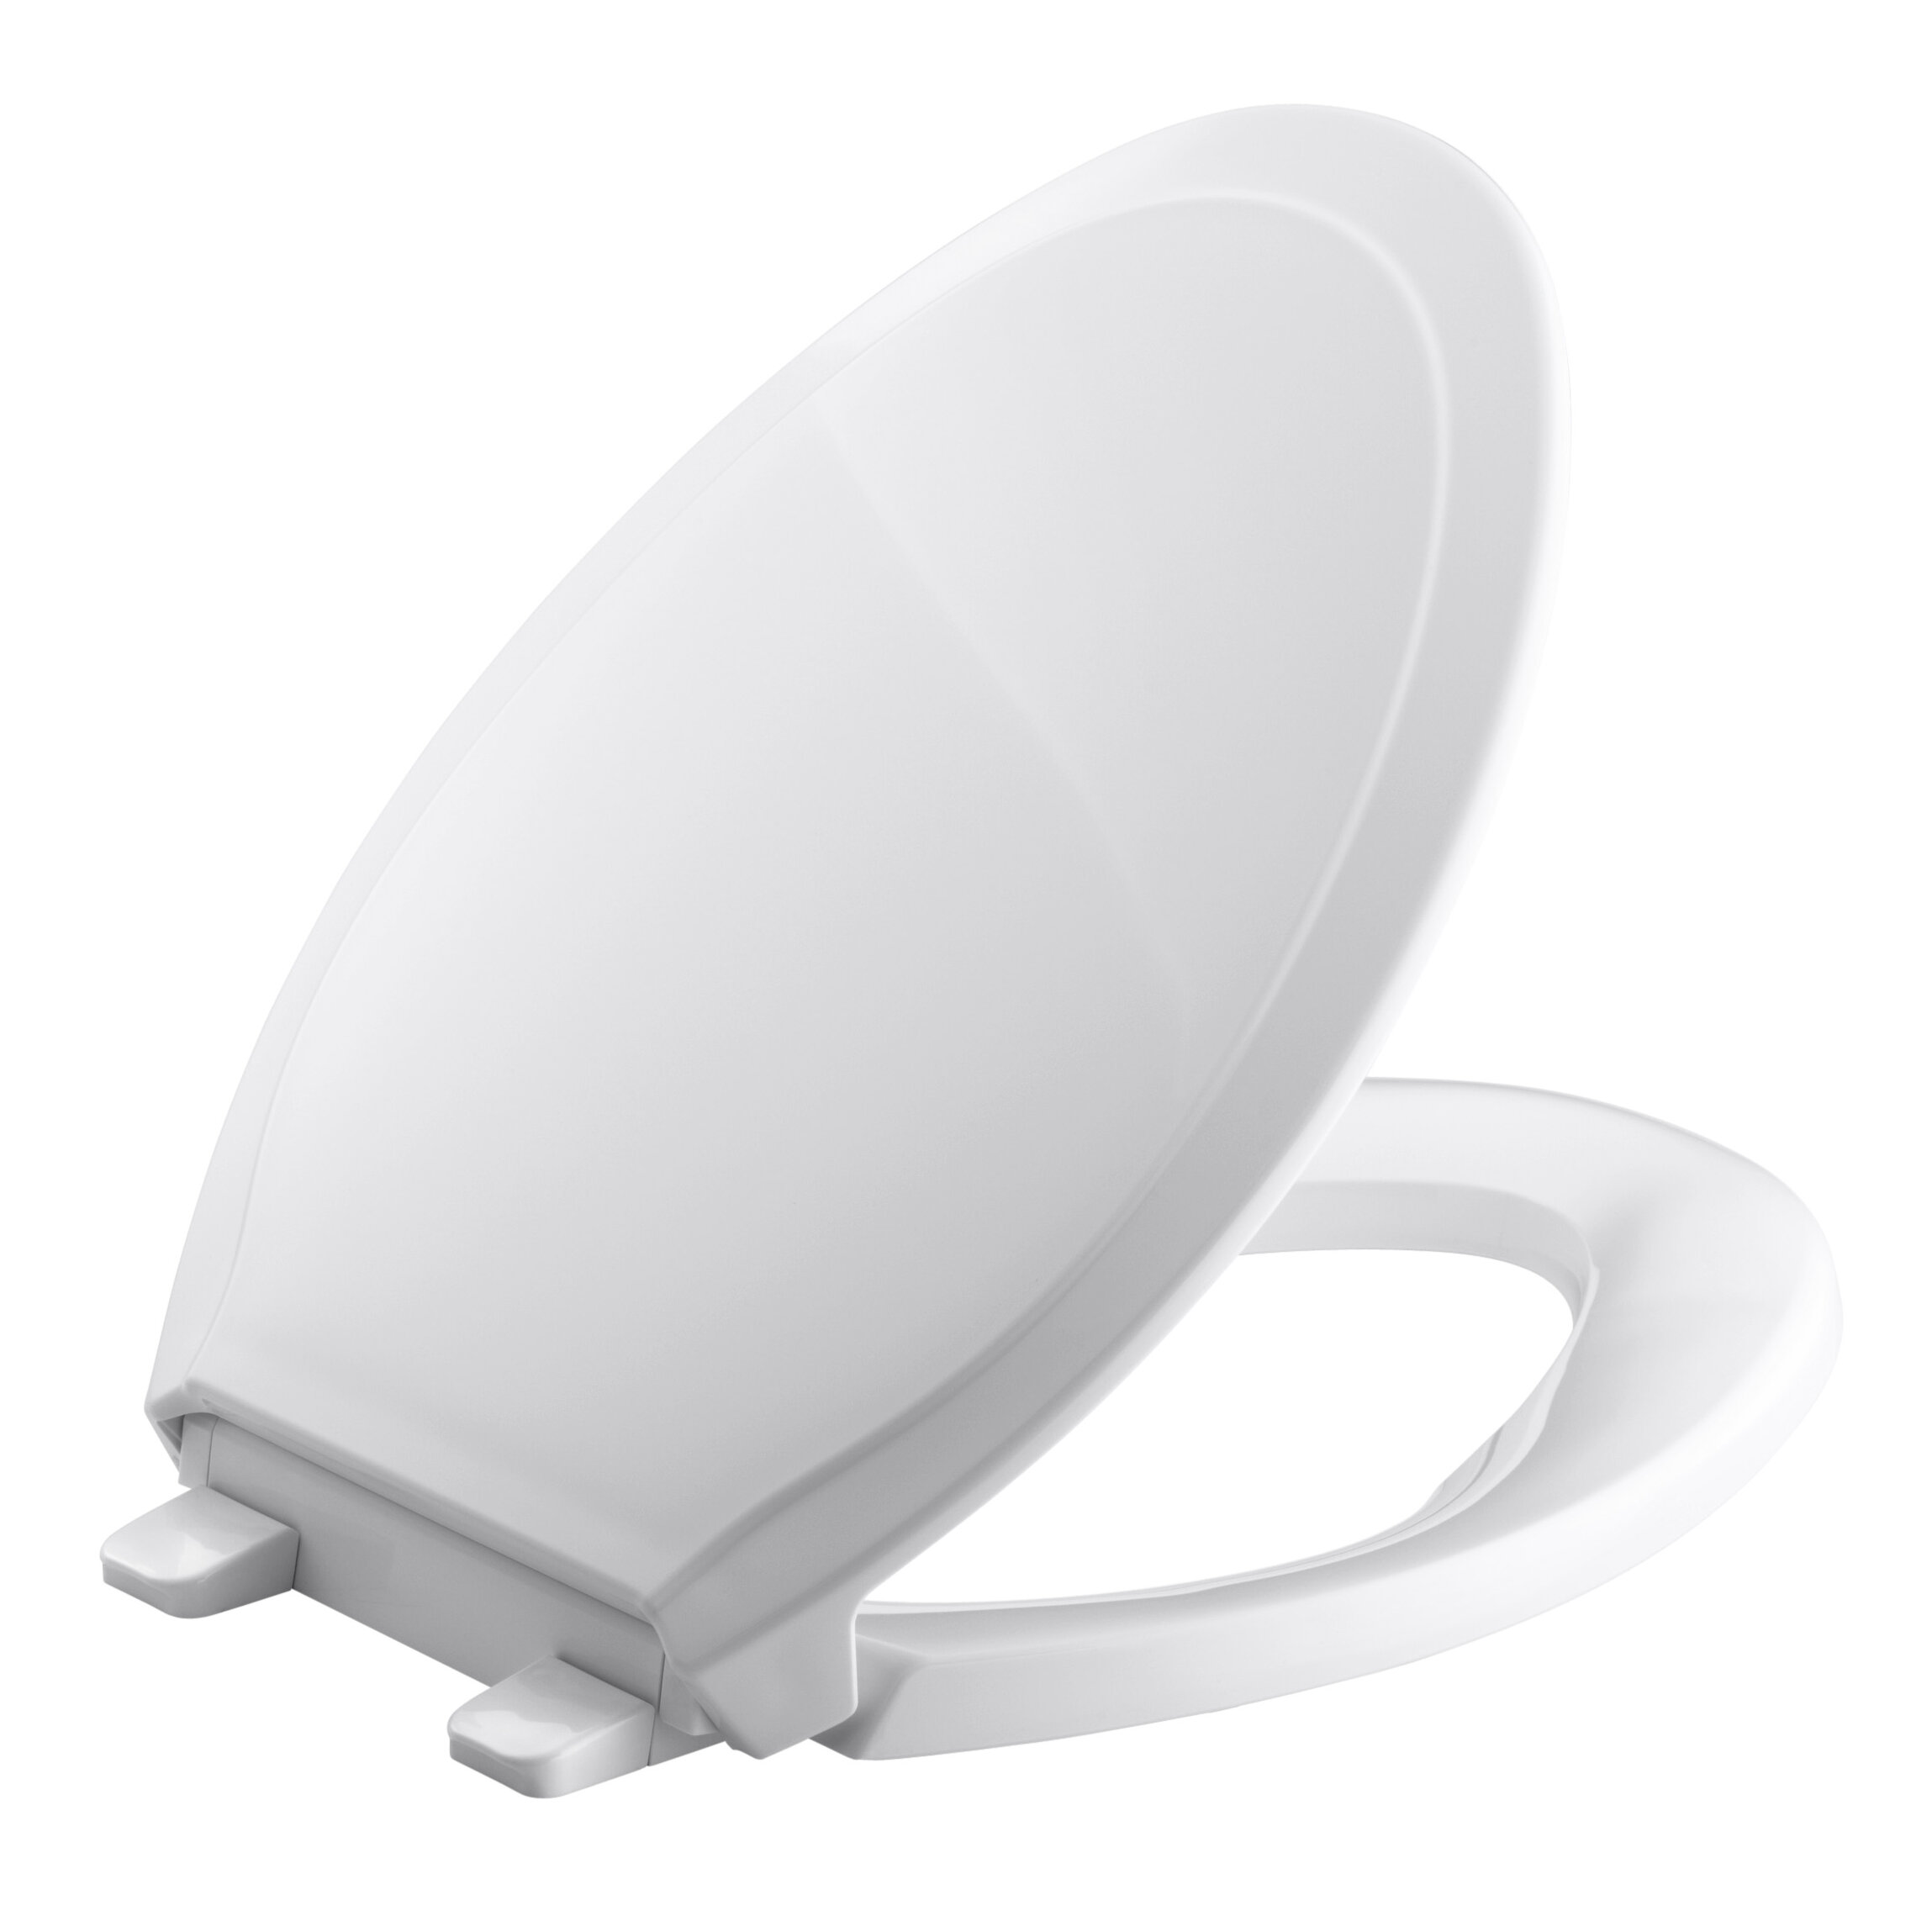 Superb Rutledge Quiet Close With Grip Tightelongated Toilet Seat Pdpeps Interior Chair Design Pdpepsorg